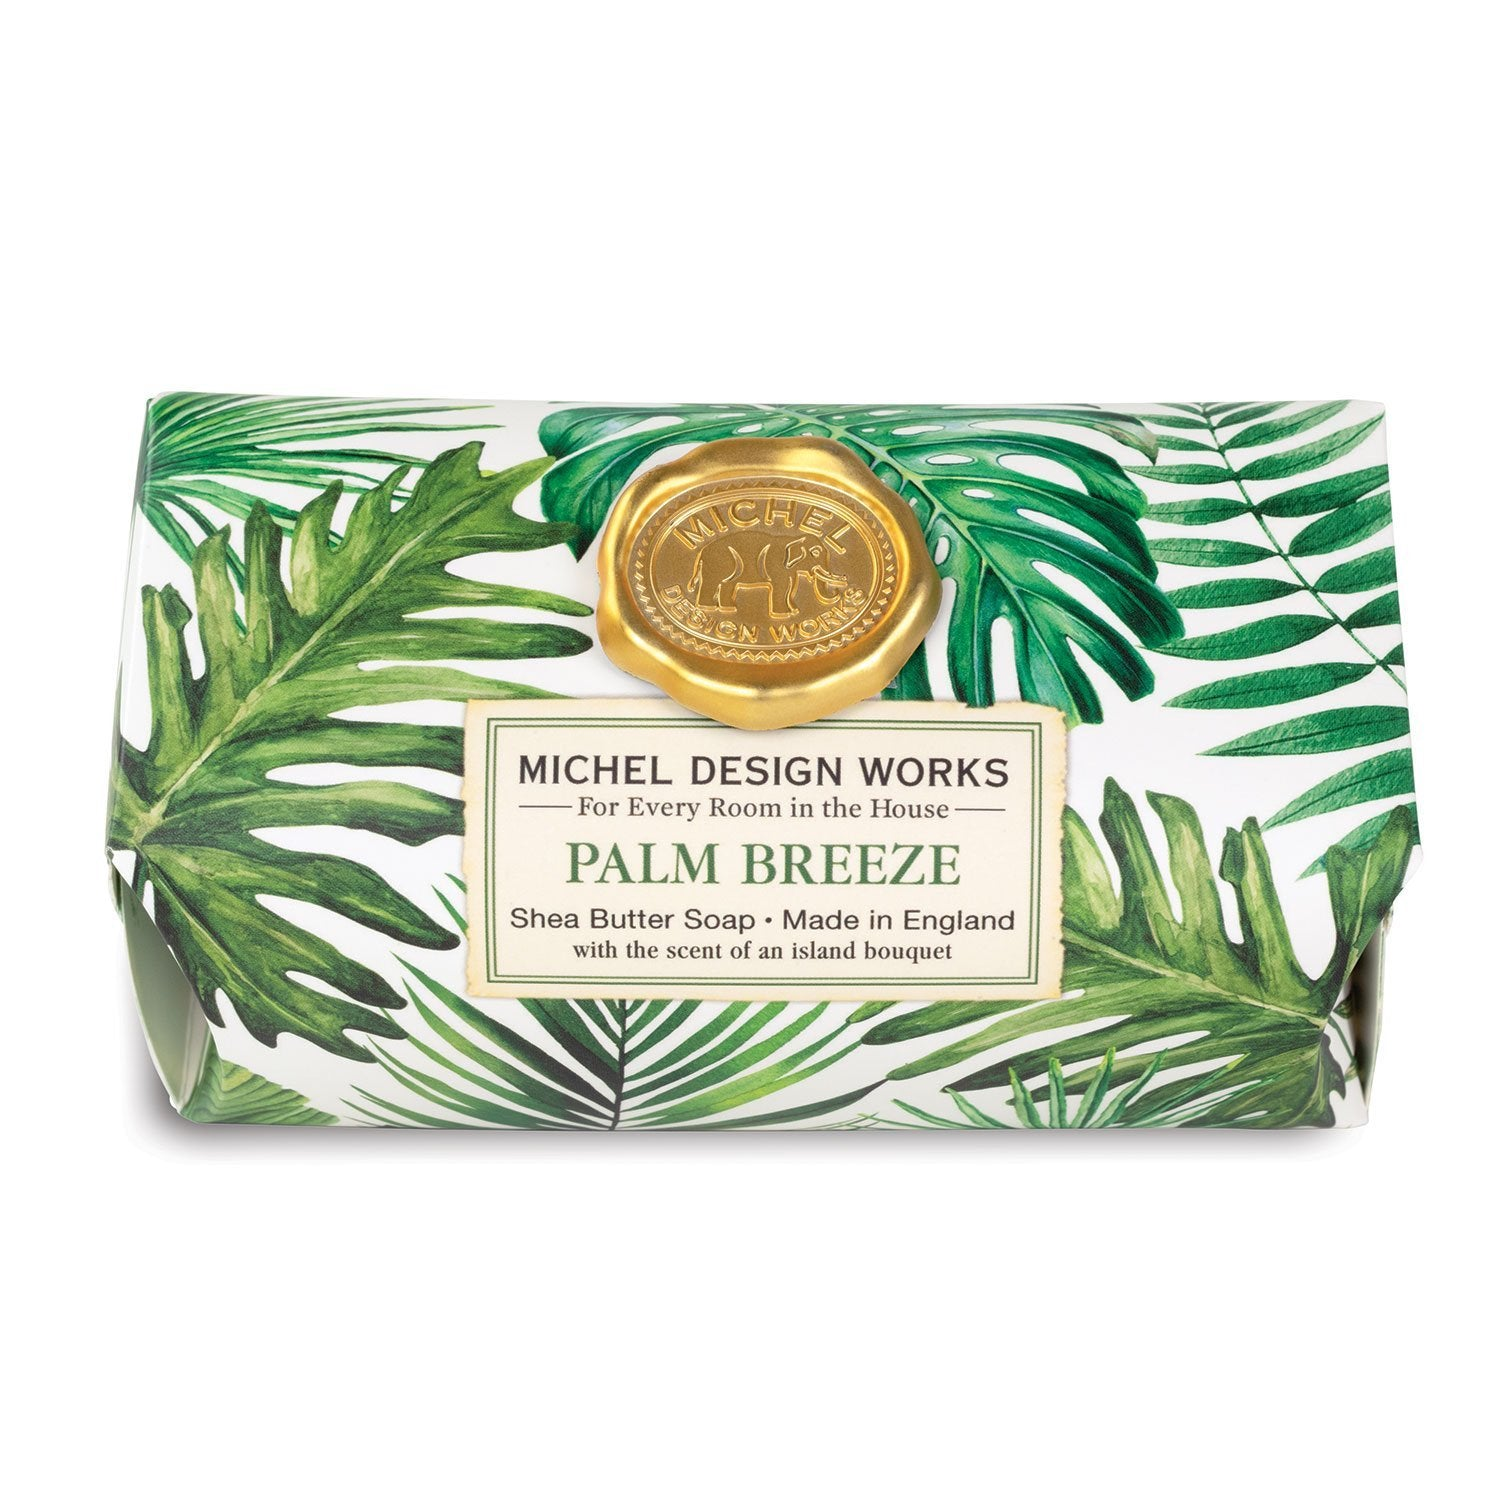 PALM BREEZE SOAP SOAL336 - Molly's! A Chic and Unique Boutique